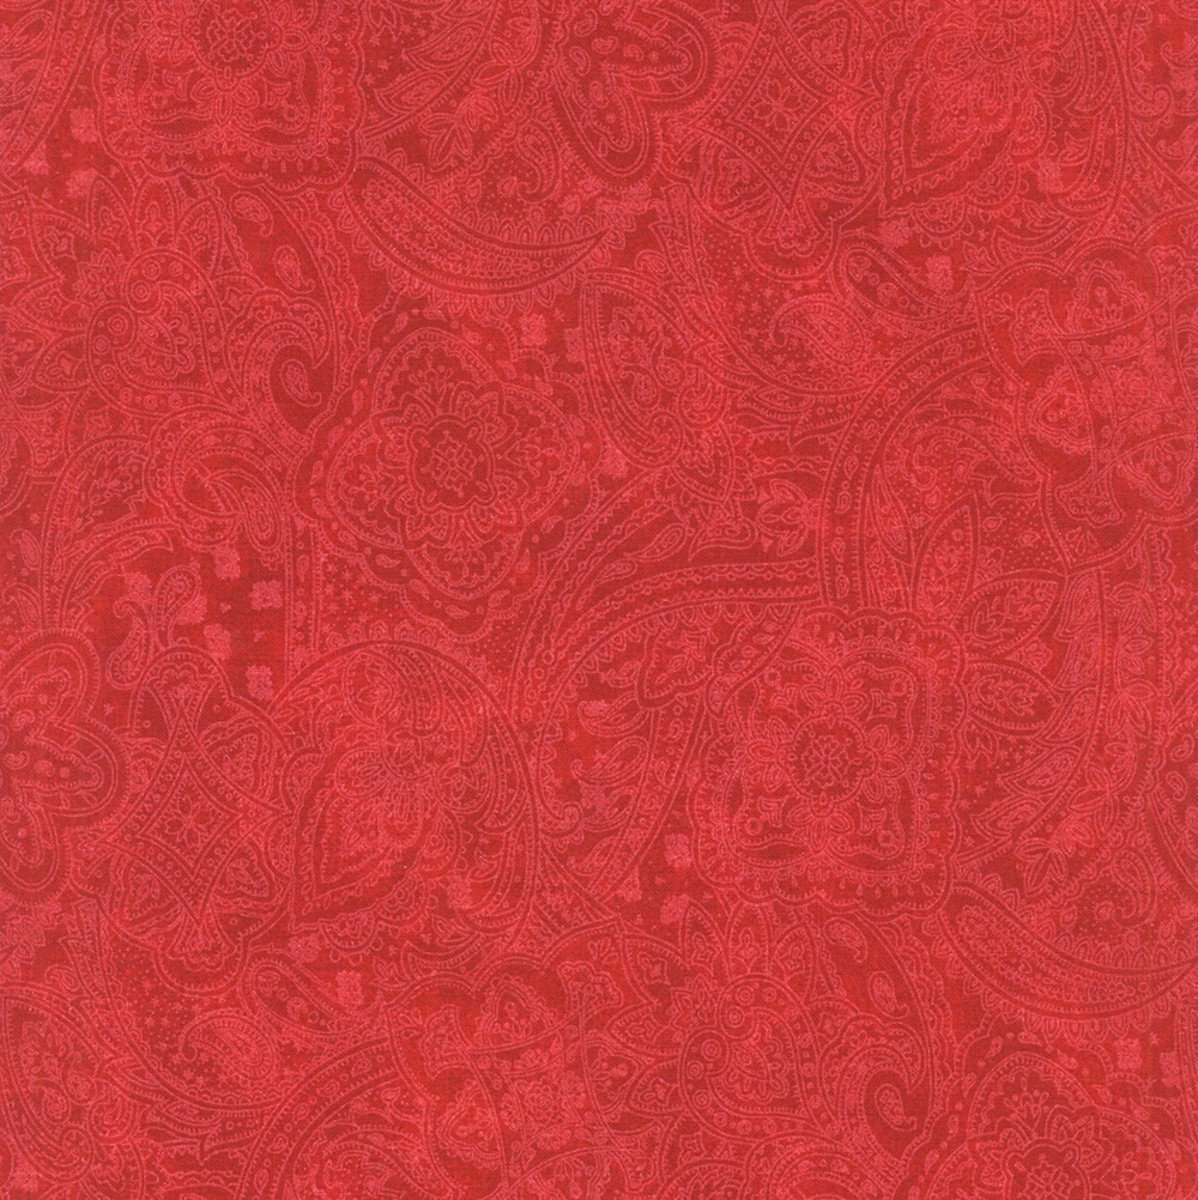 CHOICE FABRICS 108 INCH WIDE QUILT BACKING ANTIQUE PAISLEY SCARLET